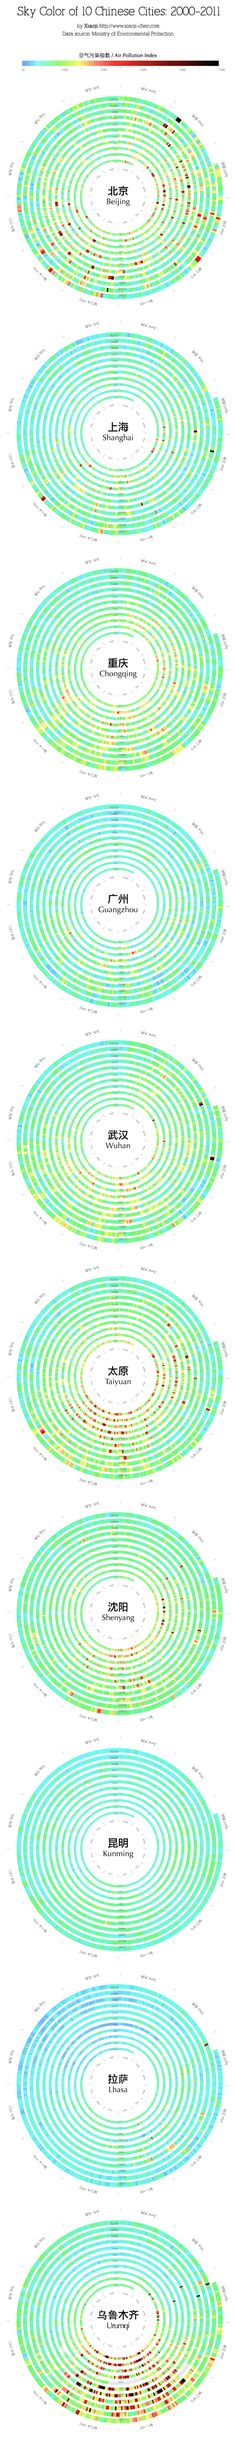 Xiaoji Chen's Design Weblog » Air Pollution Index of 10 Chinese Cities